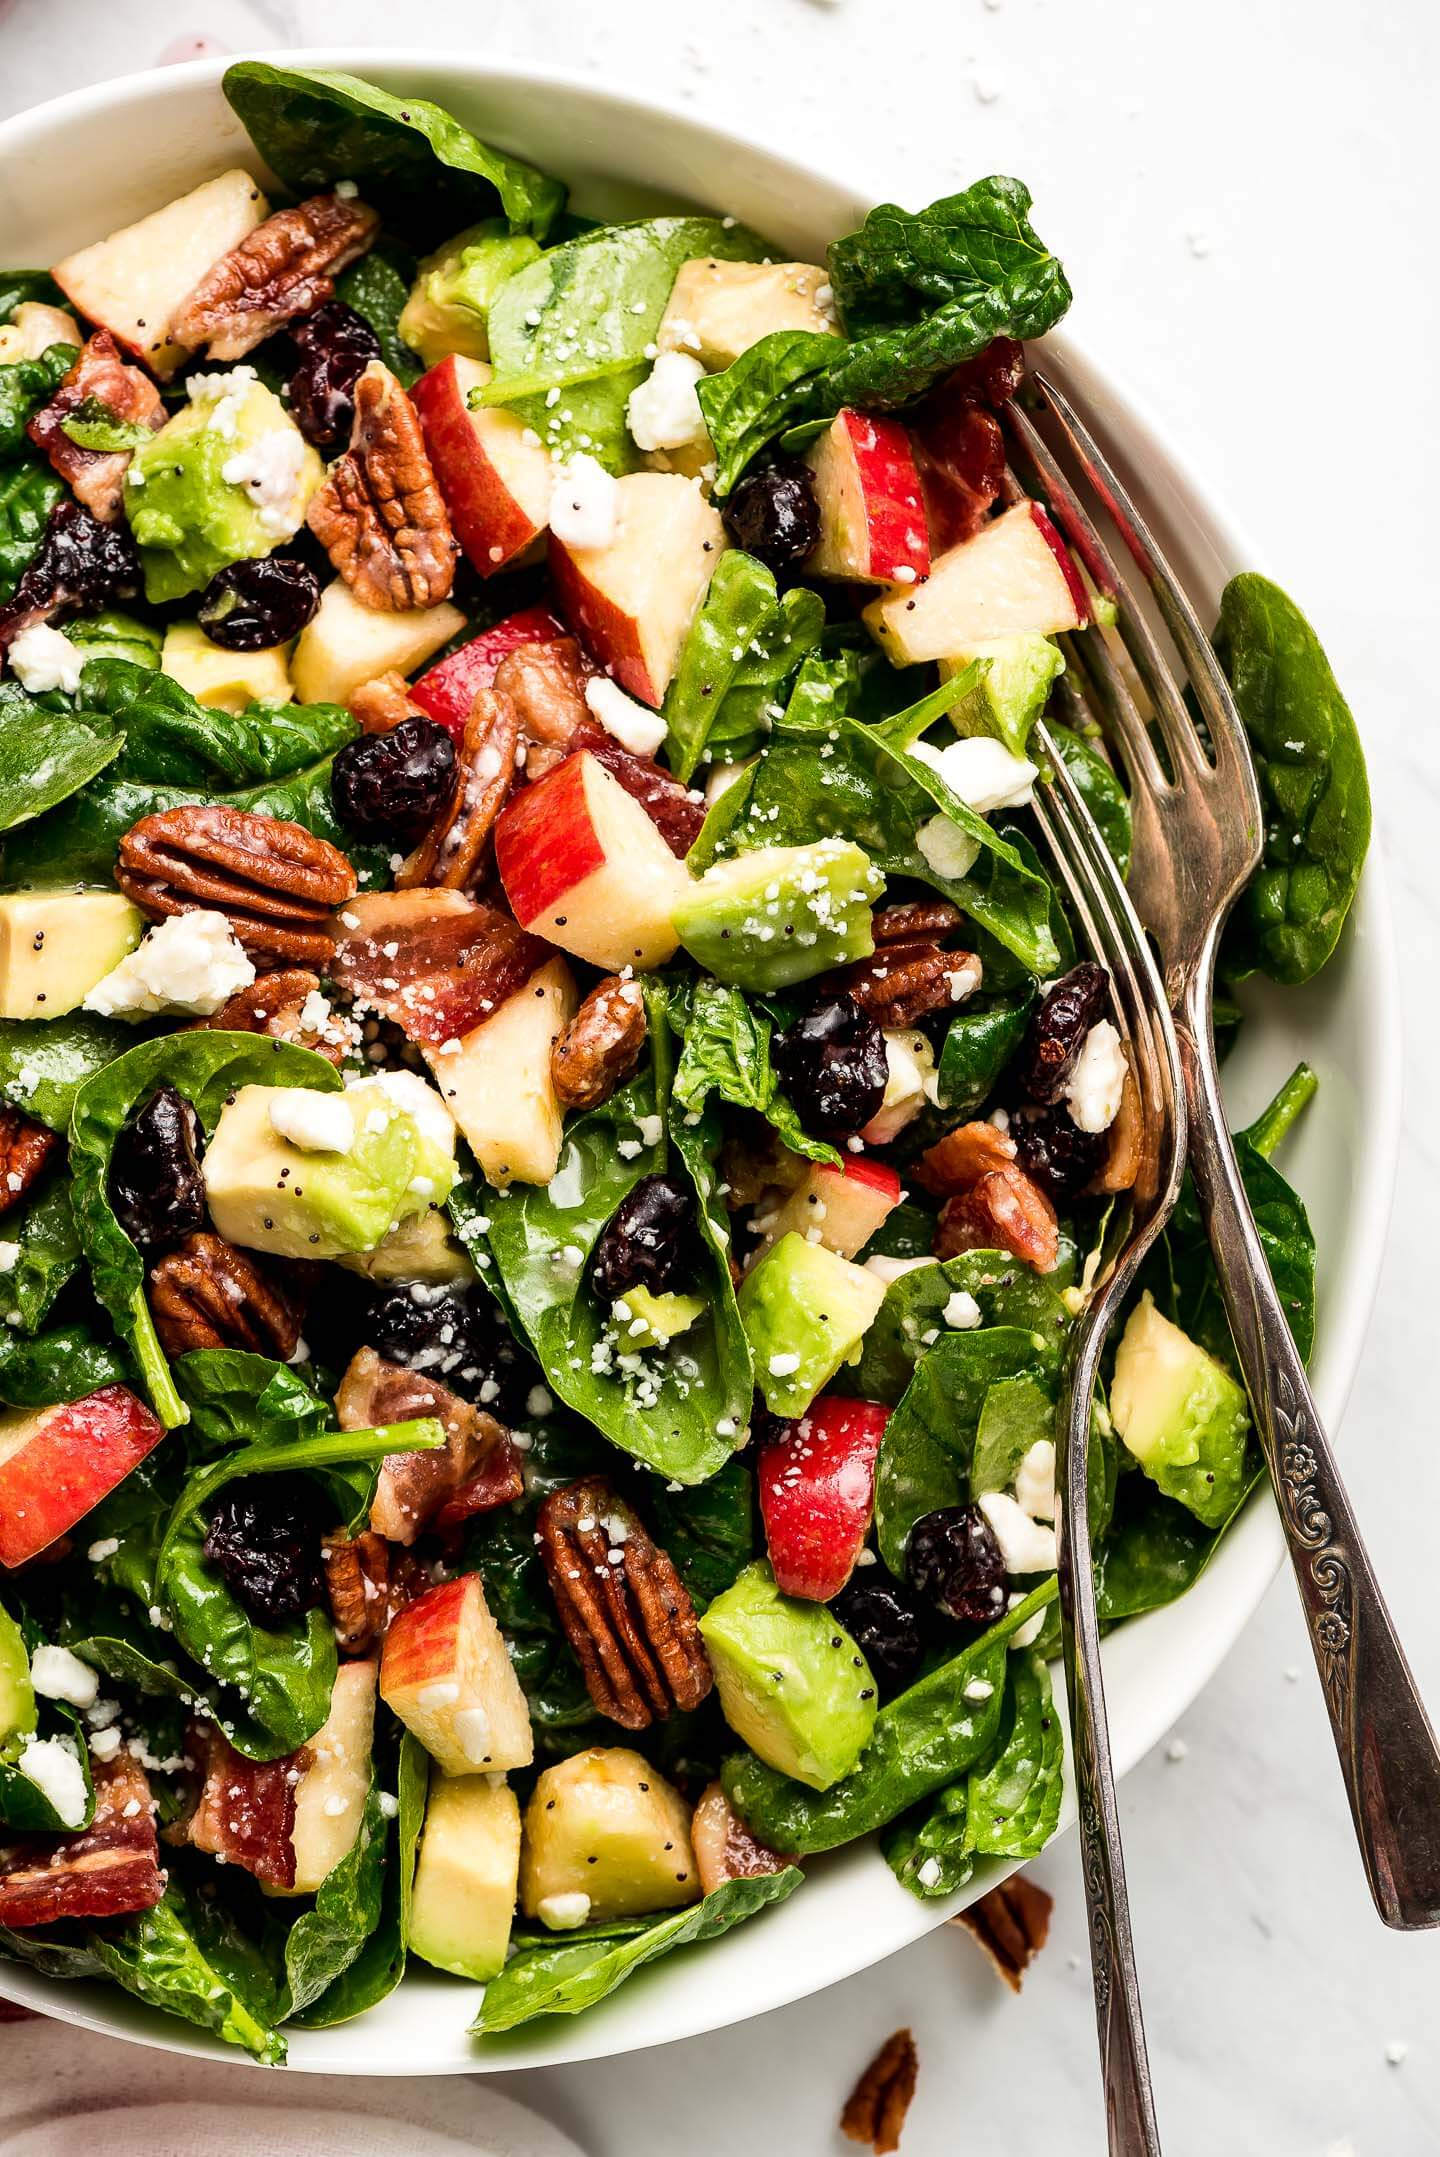 Close-up top view of a spinach salad loaded with toasted pecans, apples, avocado, dried cranberries, bacon, and feta cheese.